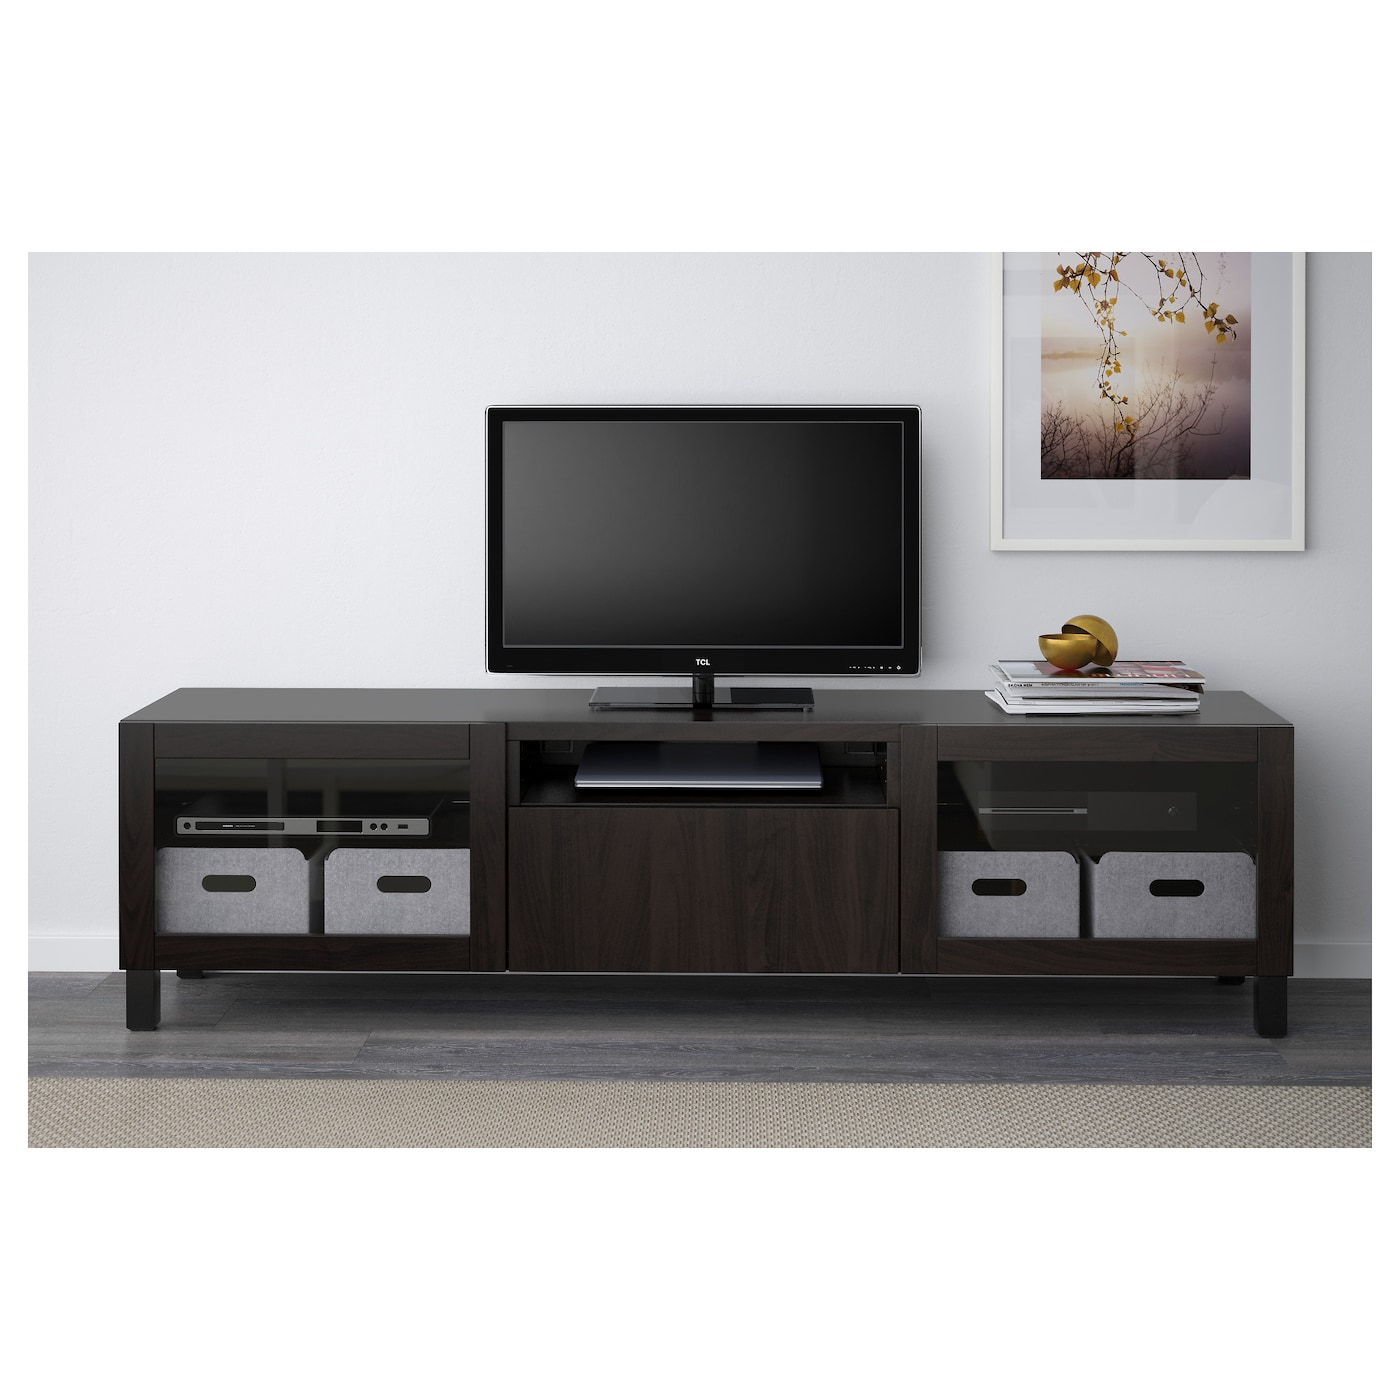 best tv bench lappviken sindvik black brown clear glass. Black Bedroom Furniture Sets. Home Design Ideas